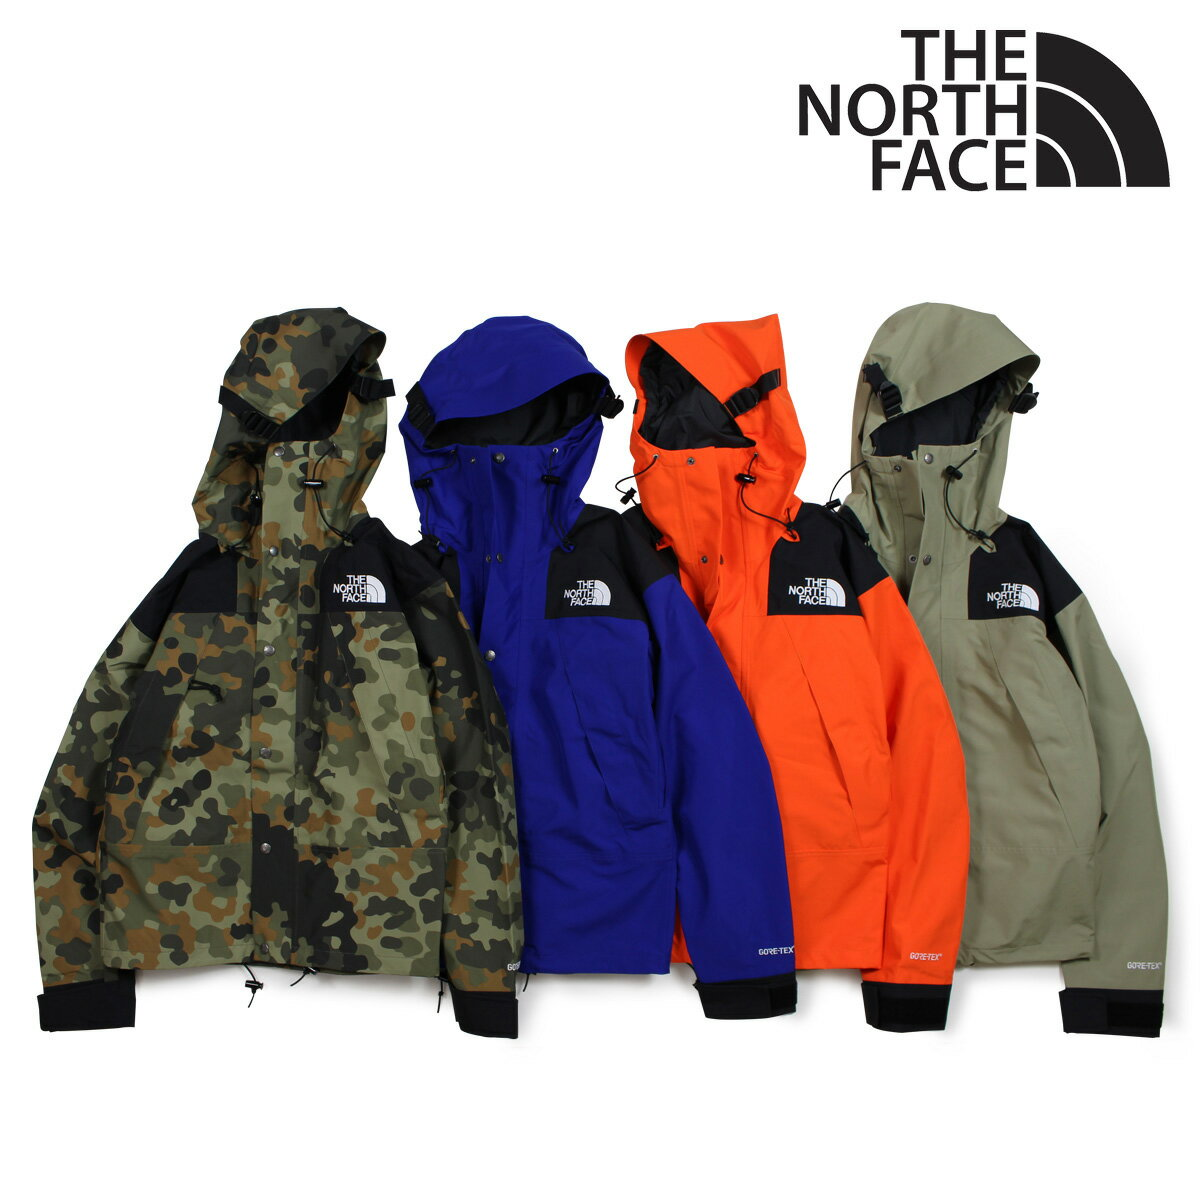 THE NORTH FACE MENS 1990 MOUNTAIN JACKET GTX North Face jacket Gore-Tex mountain  jacket men NF0A3JPA  load planned Shinnyu load in reservation product 7 10  ... be82255de